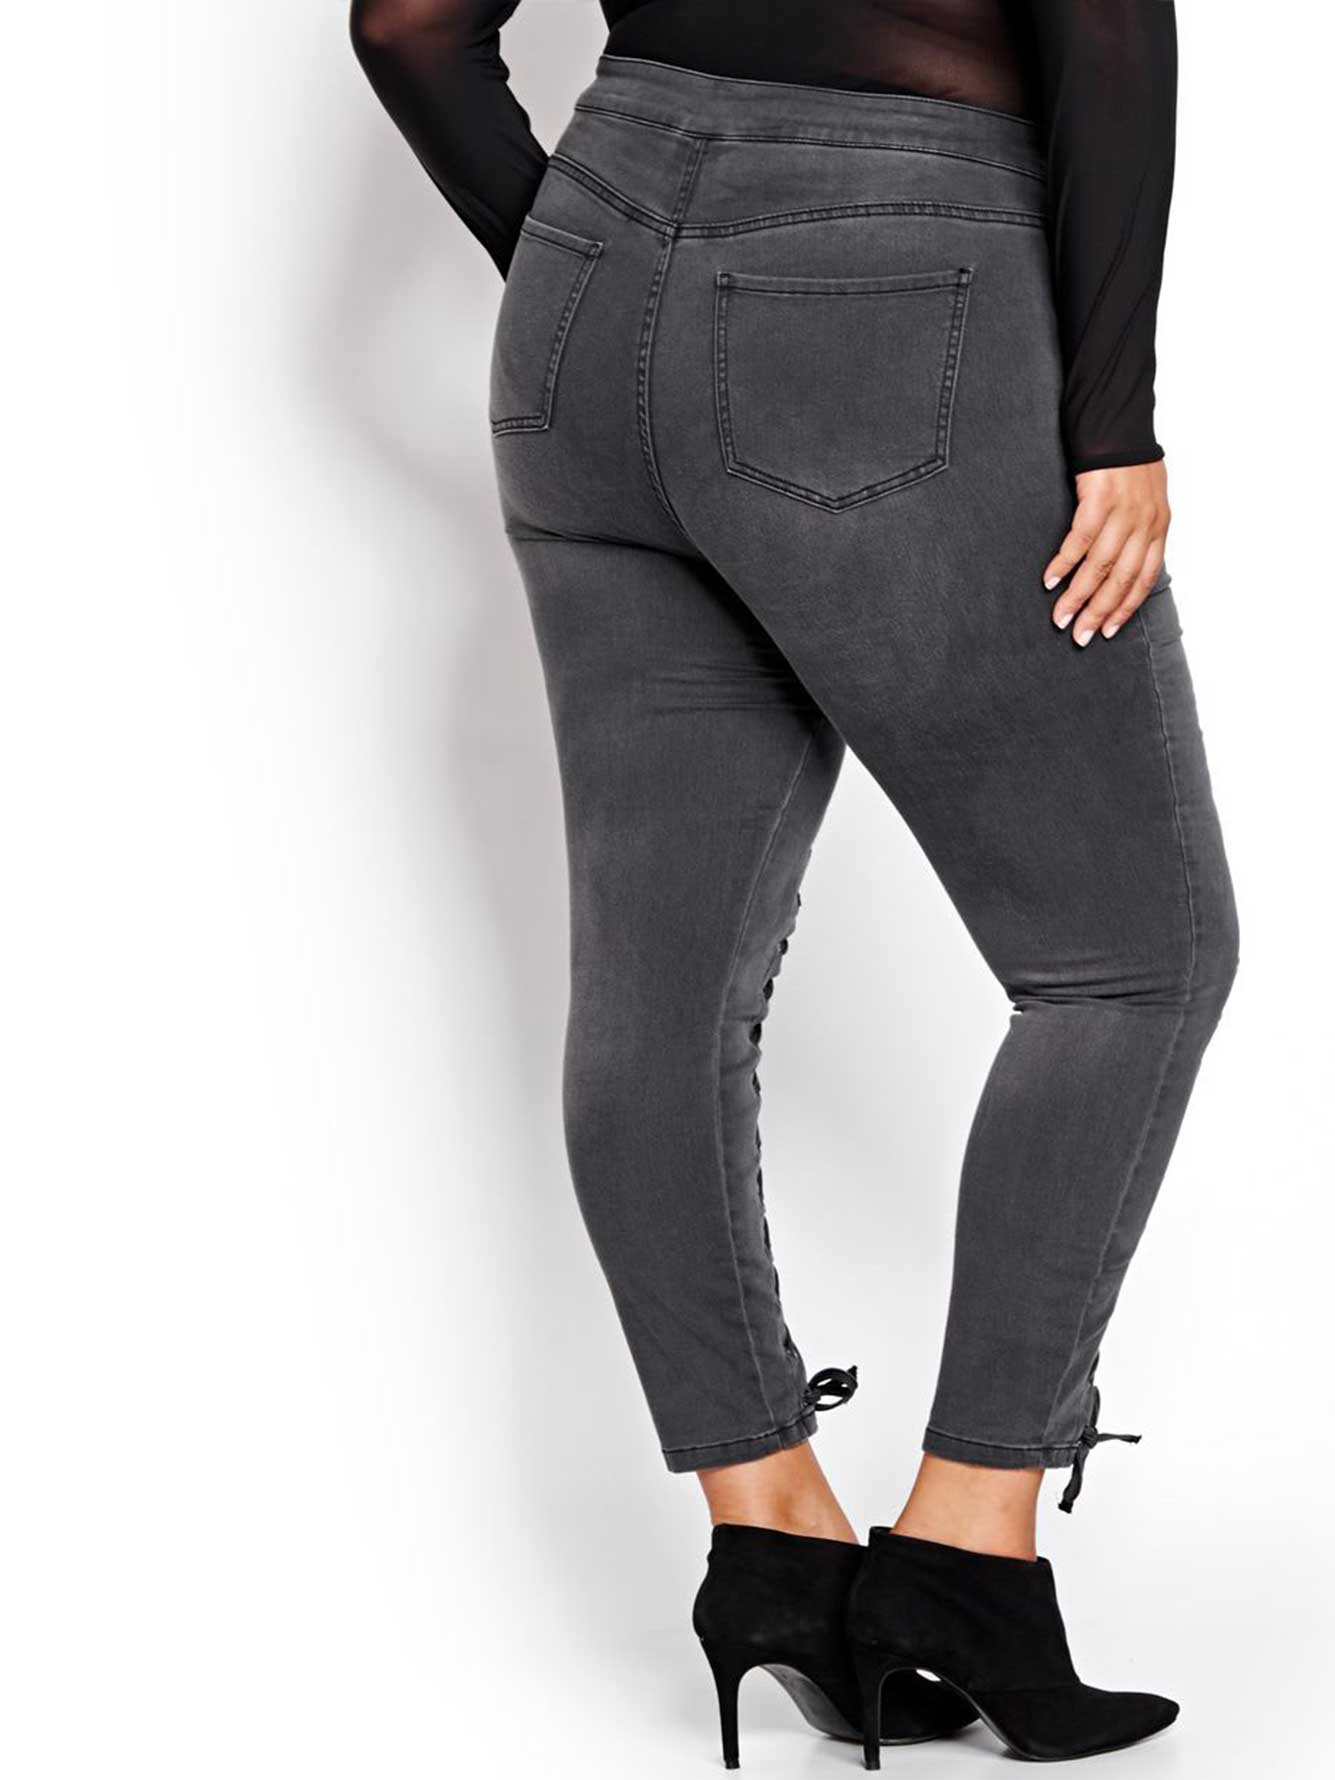 Nadia Aboulhosn Front Lace-up Jegging for L&L